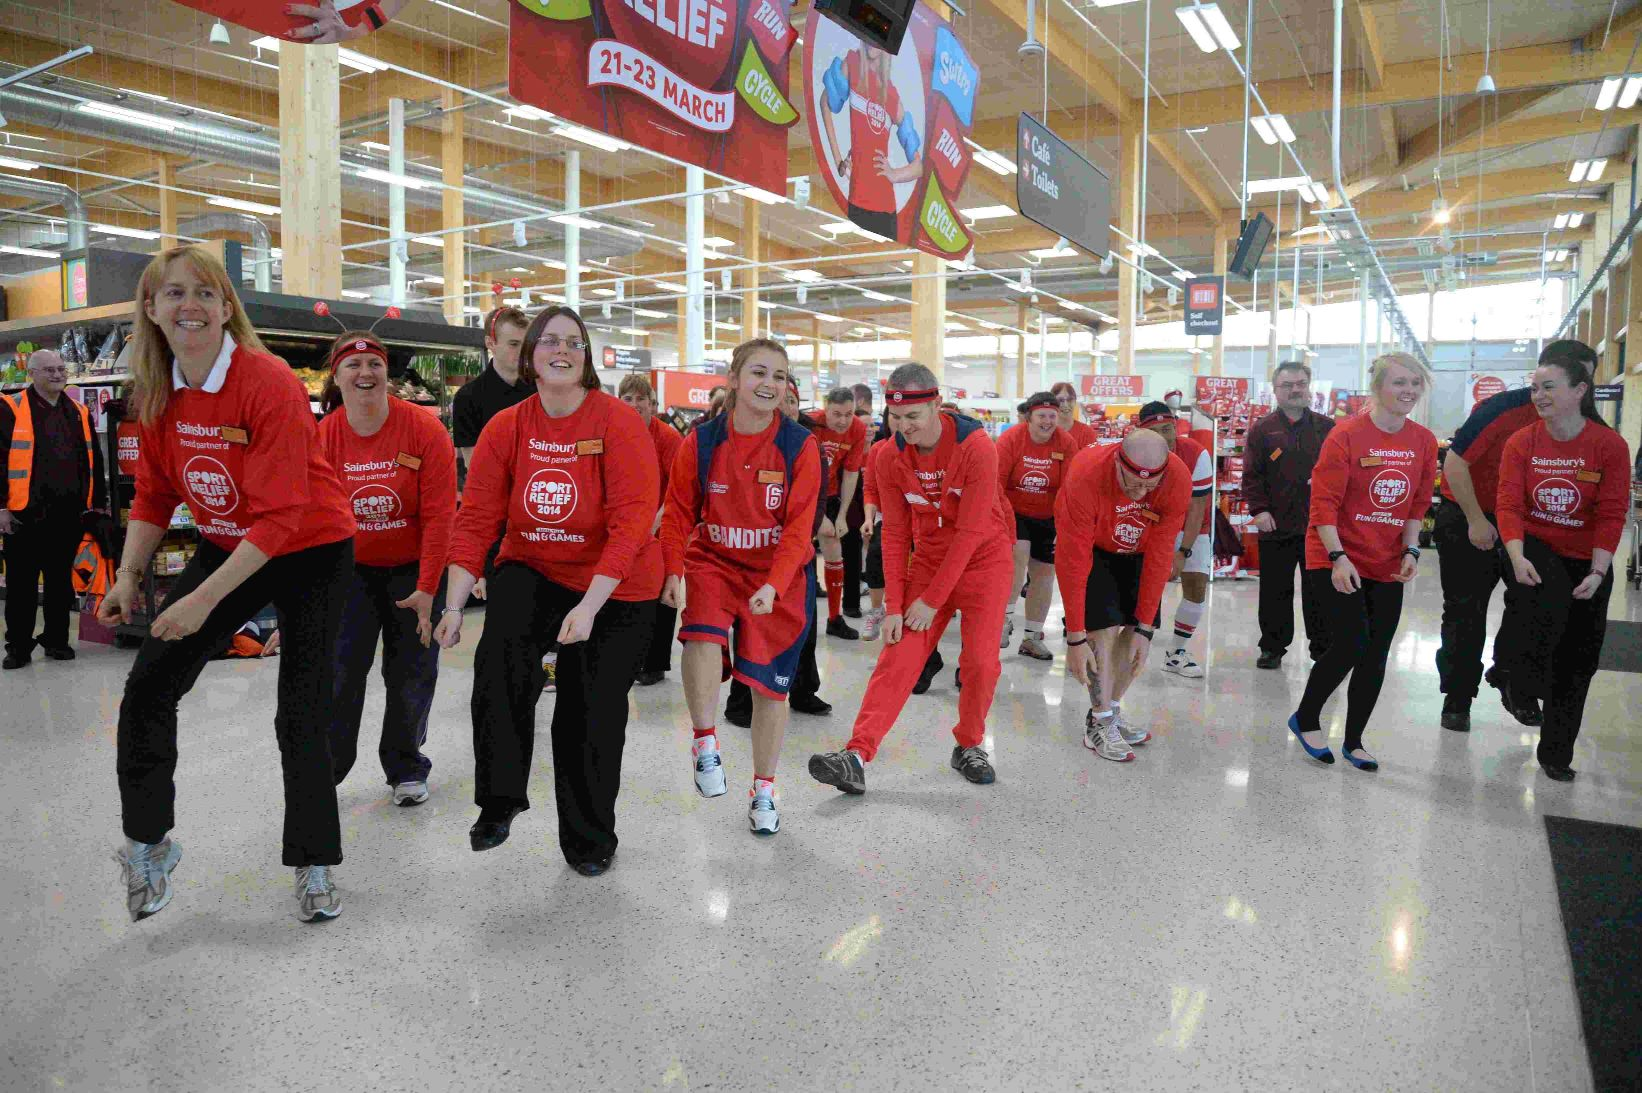 VIDEO: People across the county get active for Sport Relief